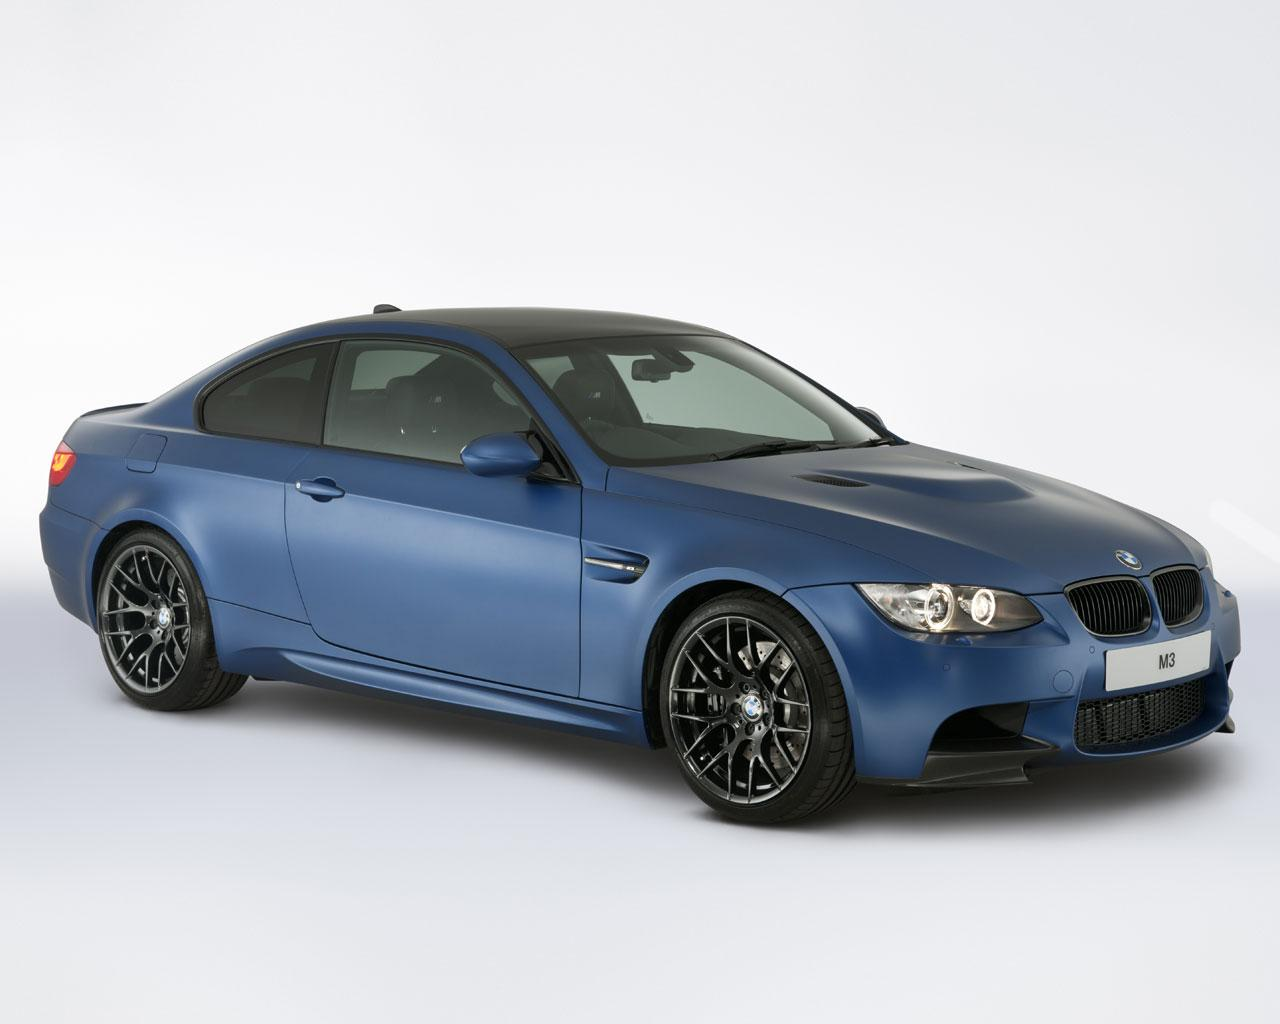 Coupe Series bmw m3 vs m5 BMW M3 and M5 Performance details | BMWCoop